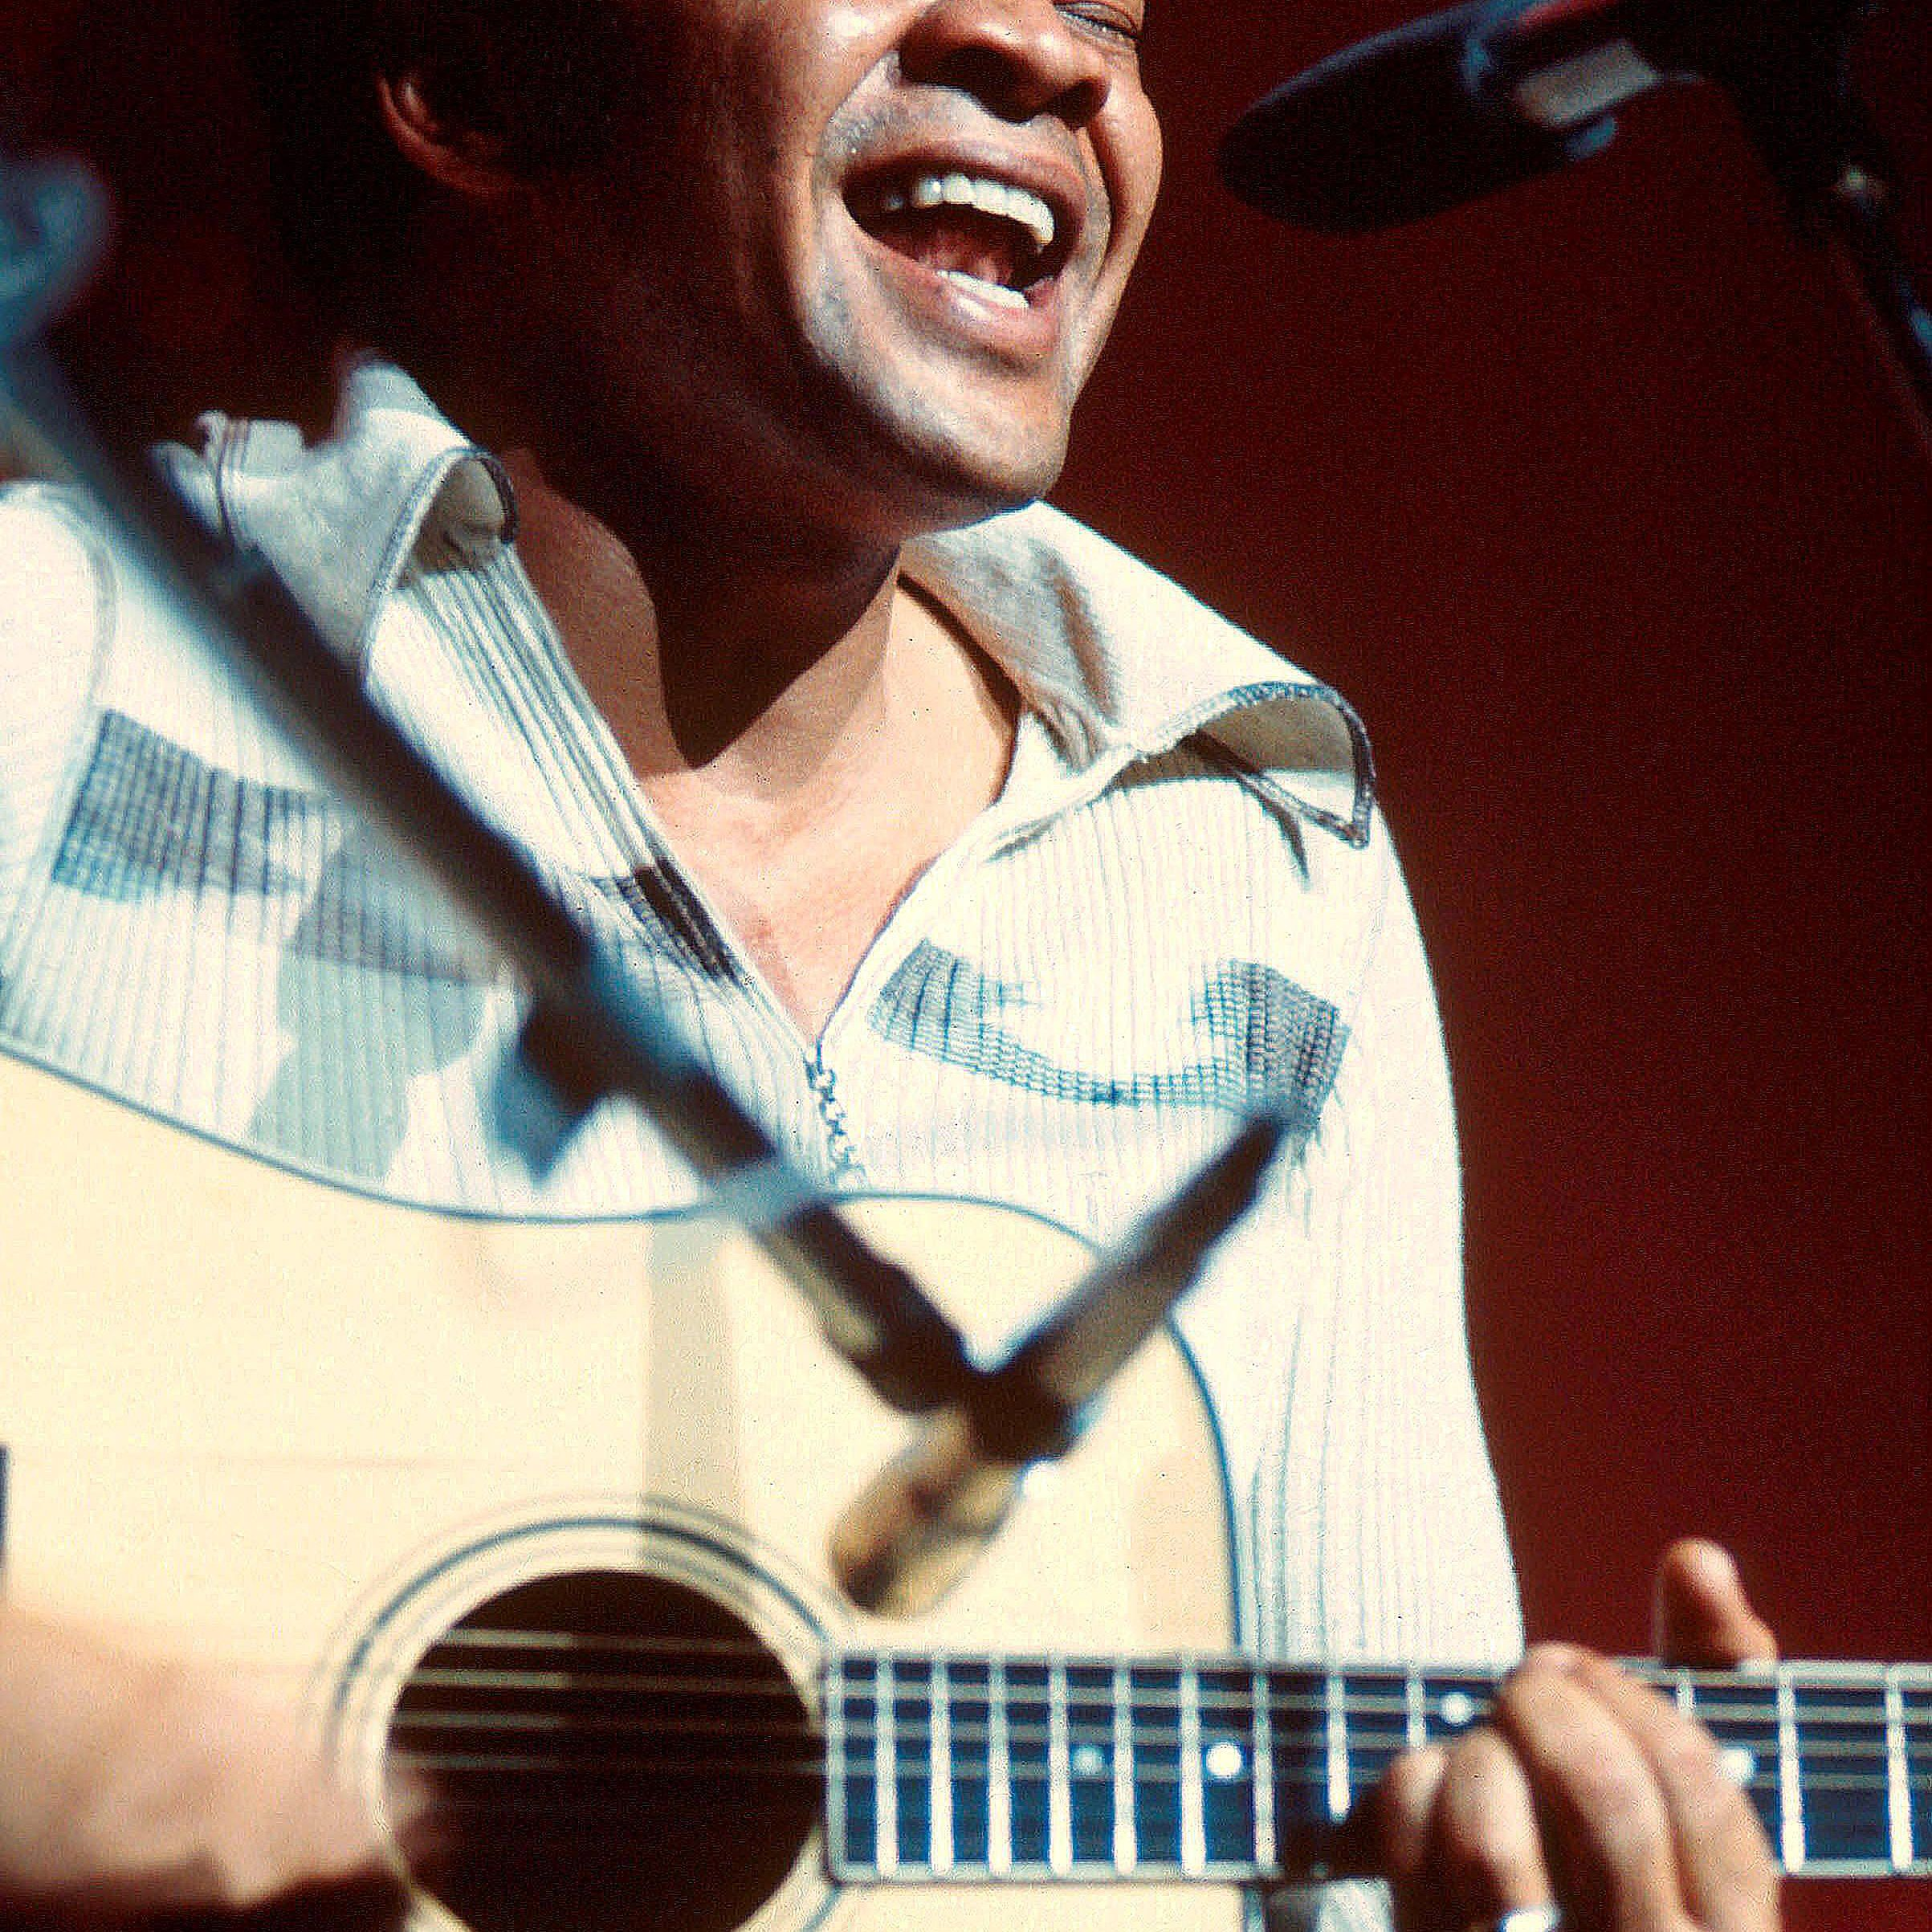 Bill Withers singing during a performance